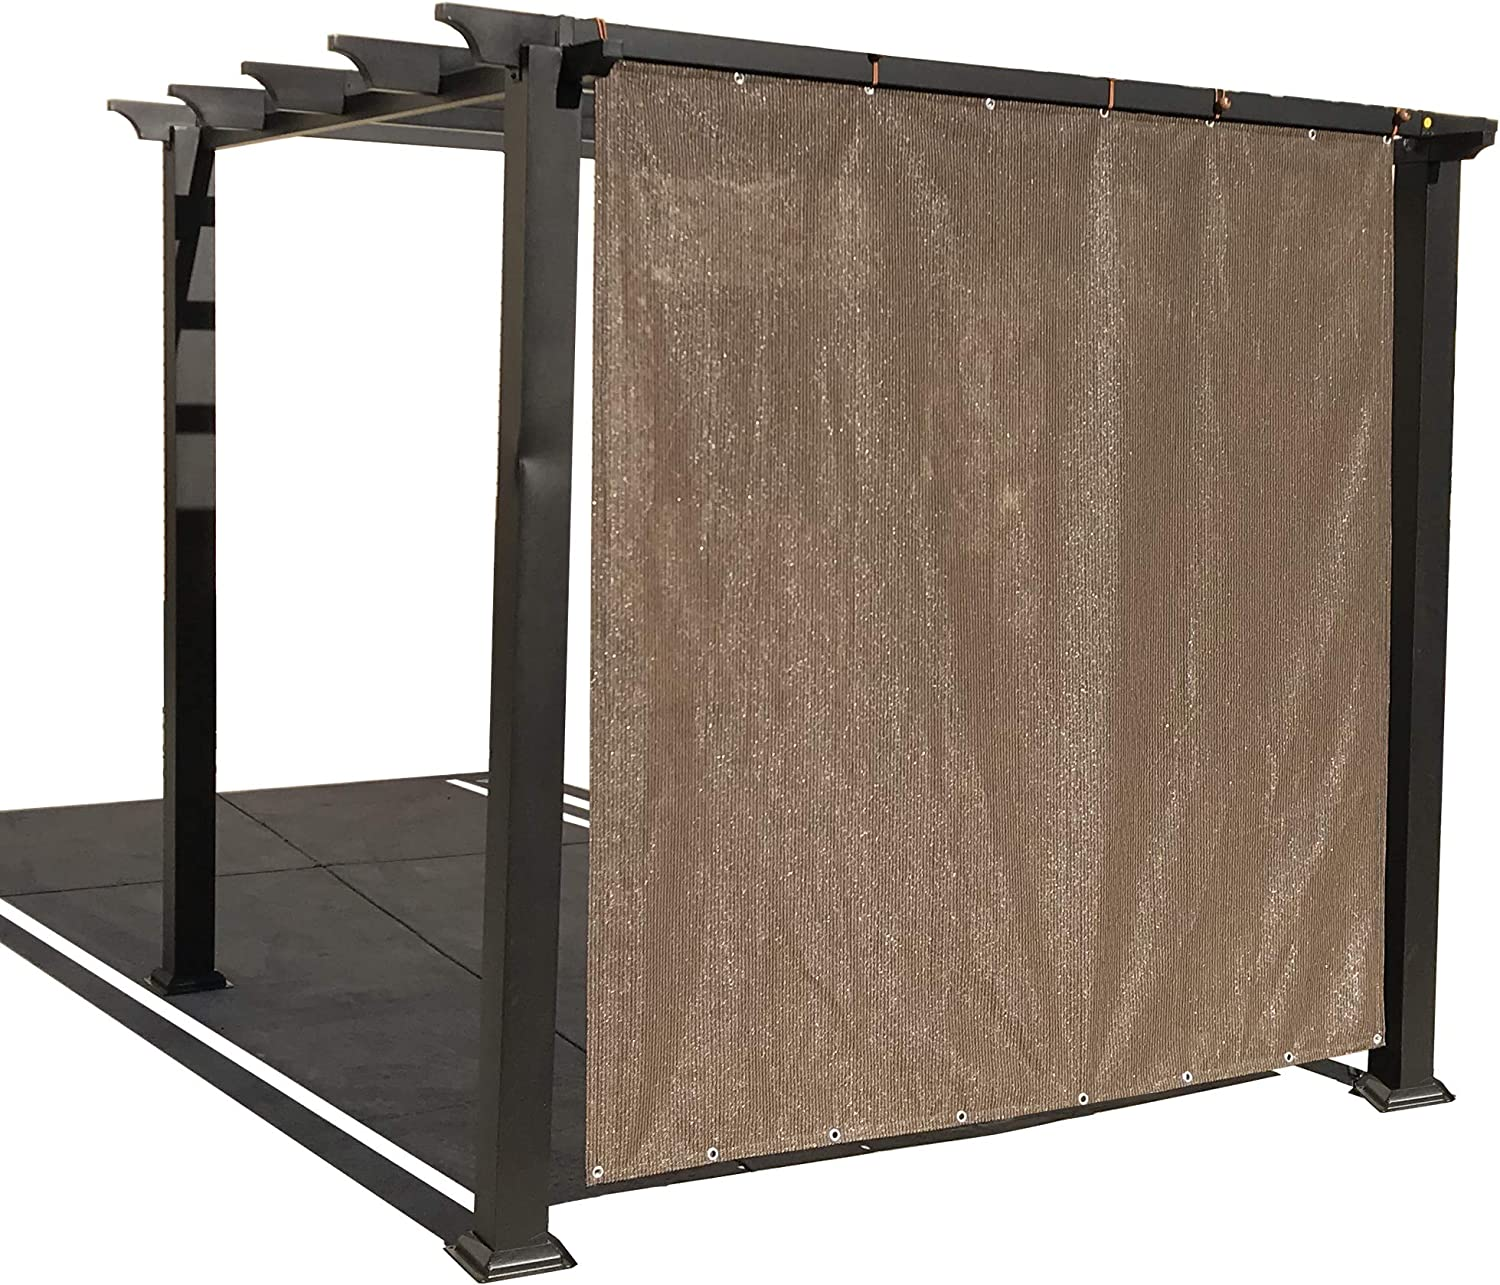 Alion Home Sun Shade Privacy Panel with Grommets on 2 Sides for Patio, Awning, Window, Pergola or Gazebo - Mocha Brown (8' x 6')